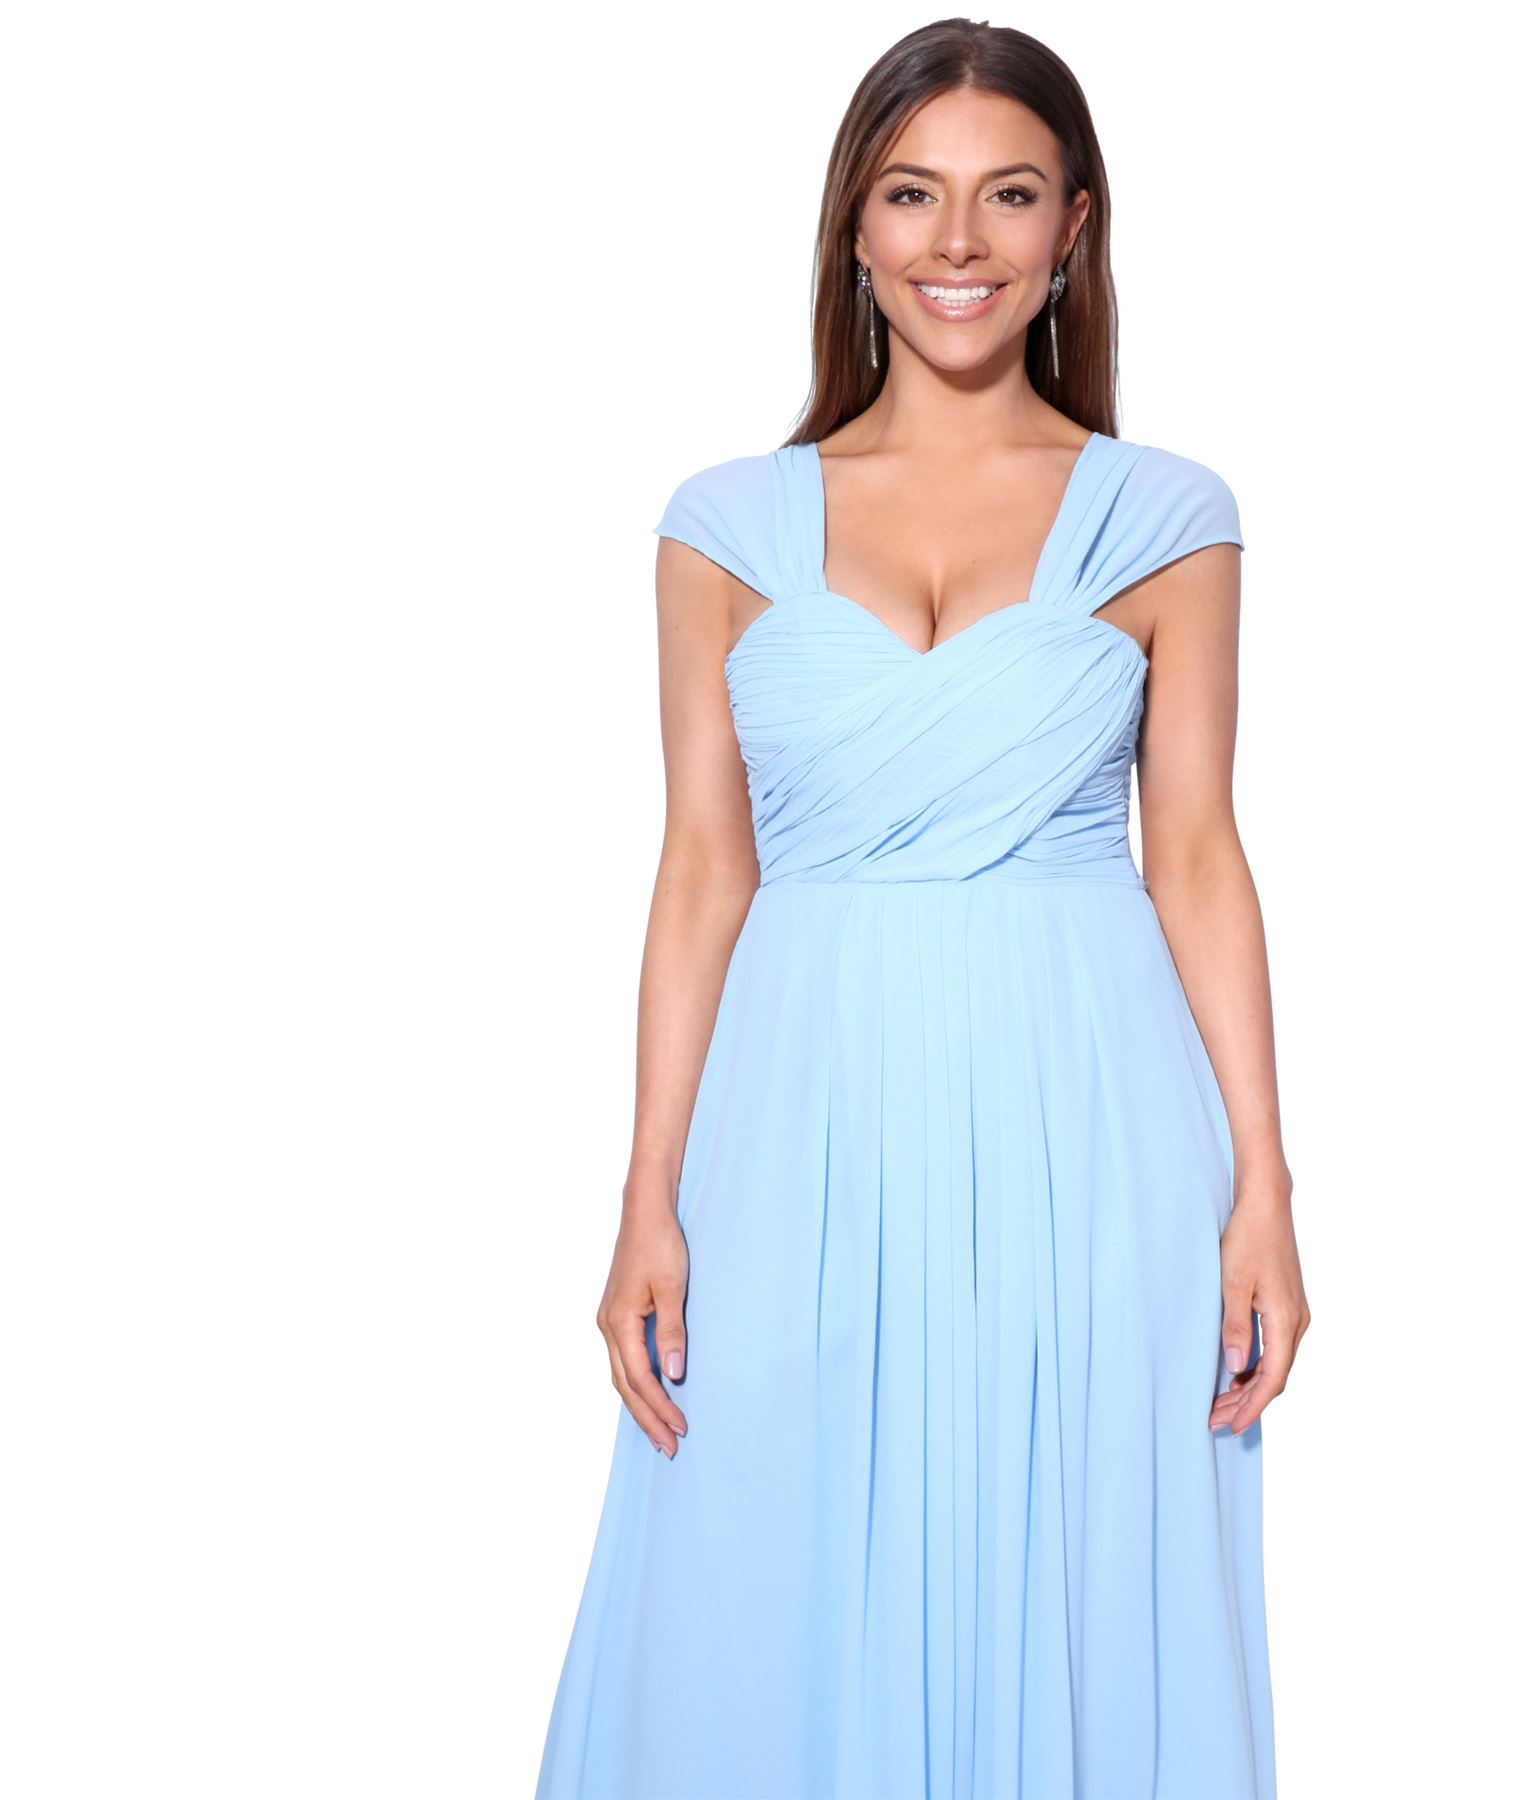 Womens-Formal-Evening-Wedding-Maxi-Prom-Dress-Long-On-Off-Shoulder-Ball-Gown thumbnail 4